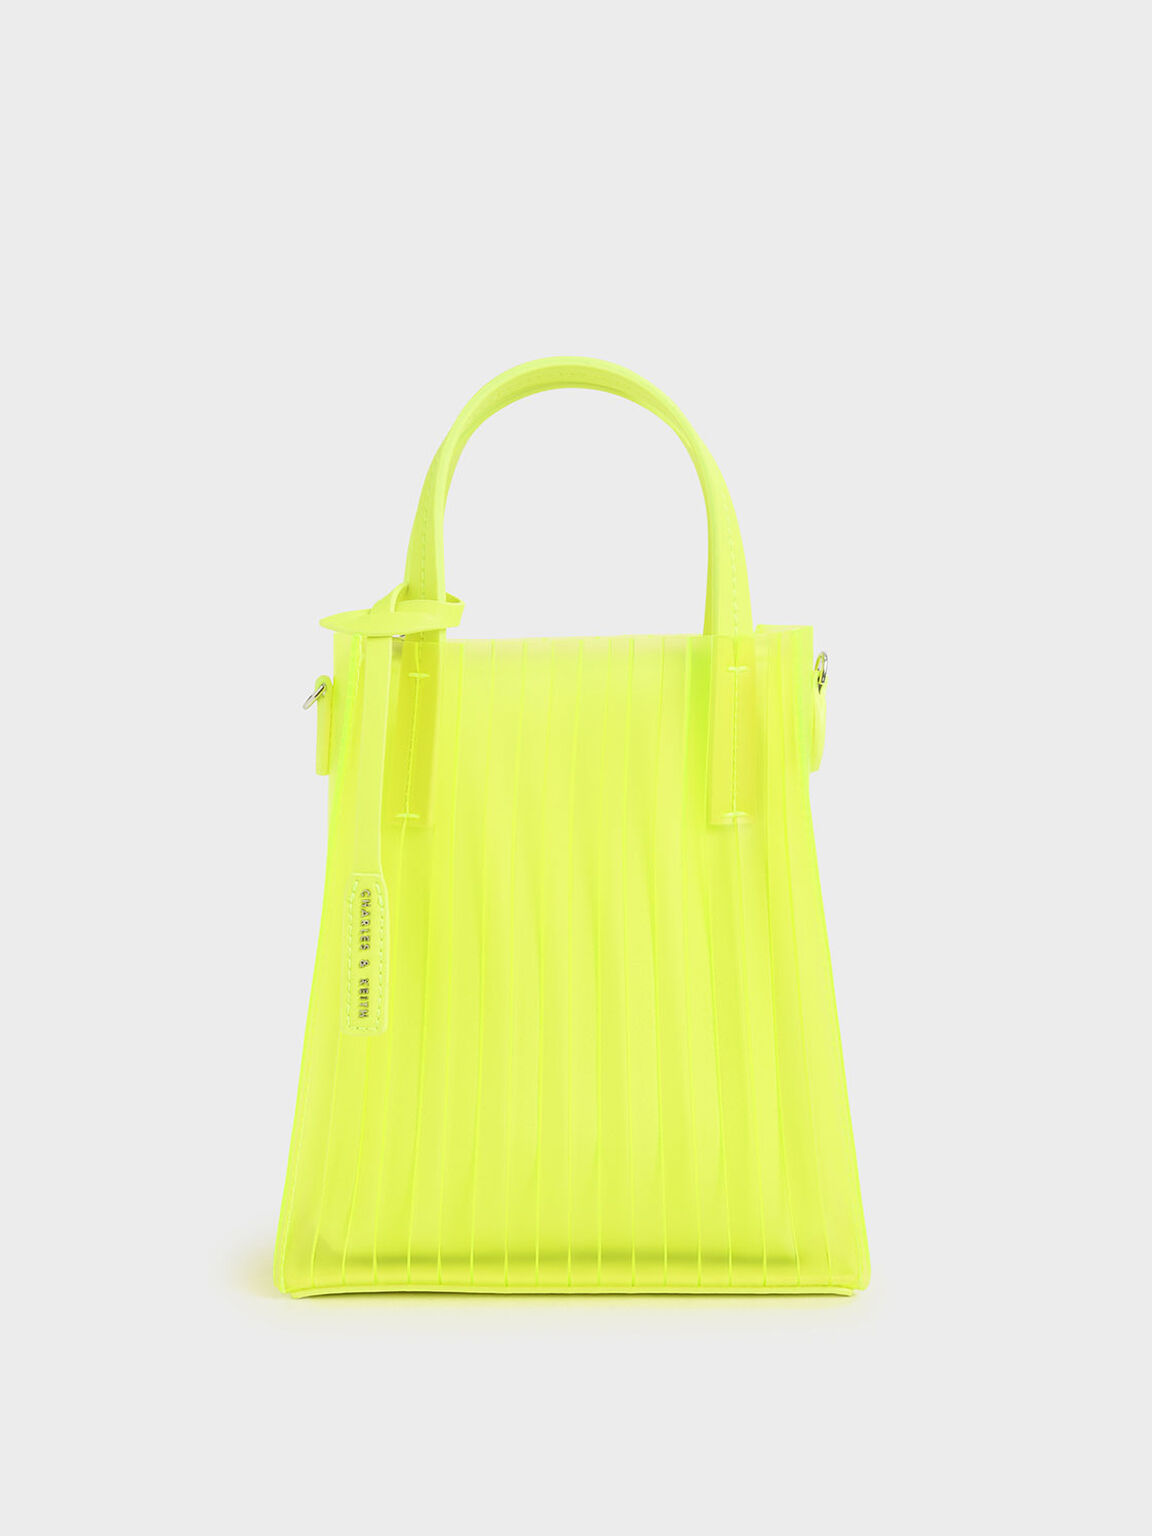 Translucent Pleated Tote Bag, Neon Yellow, hi-res